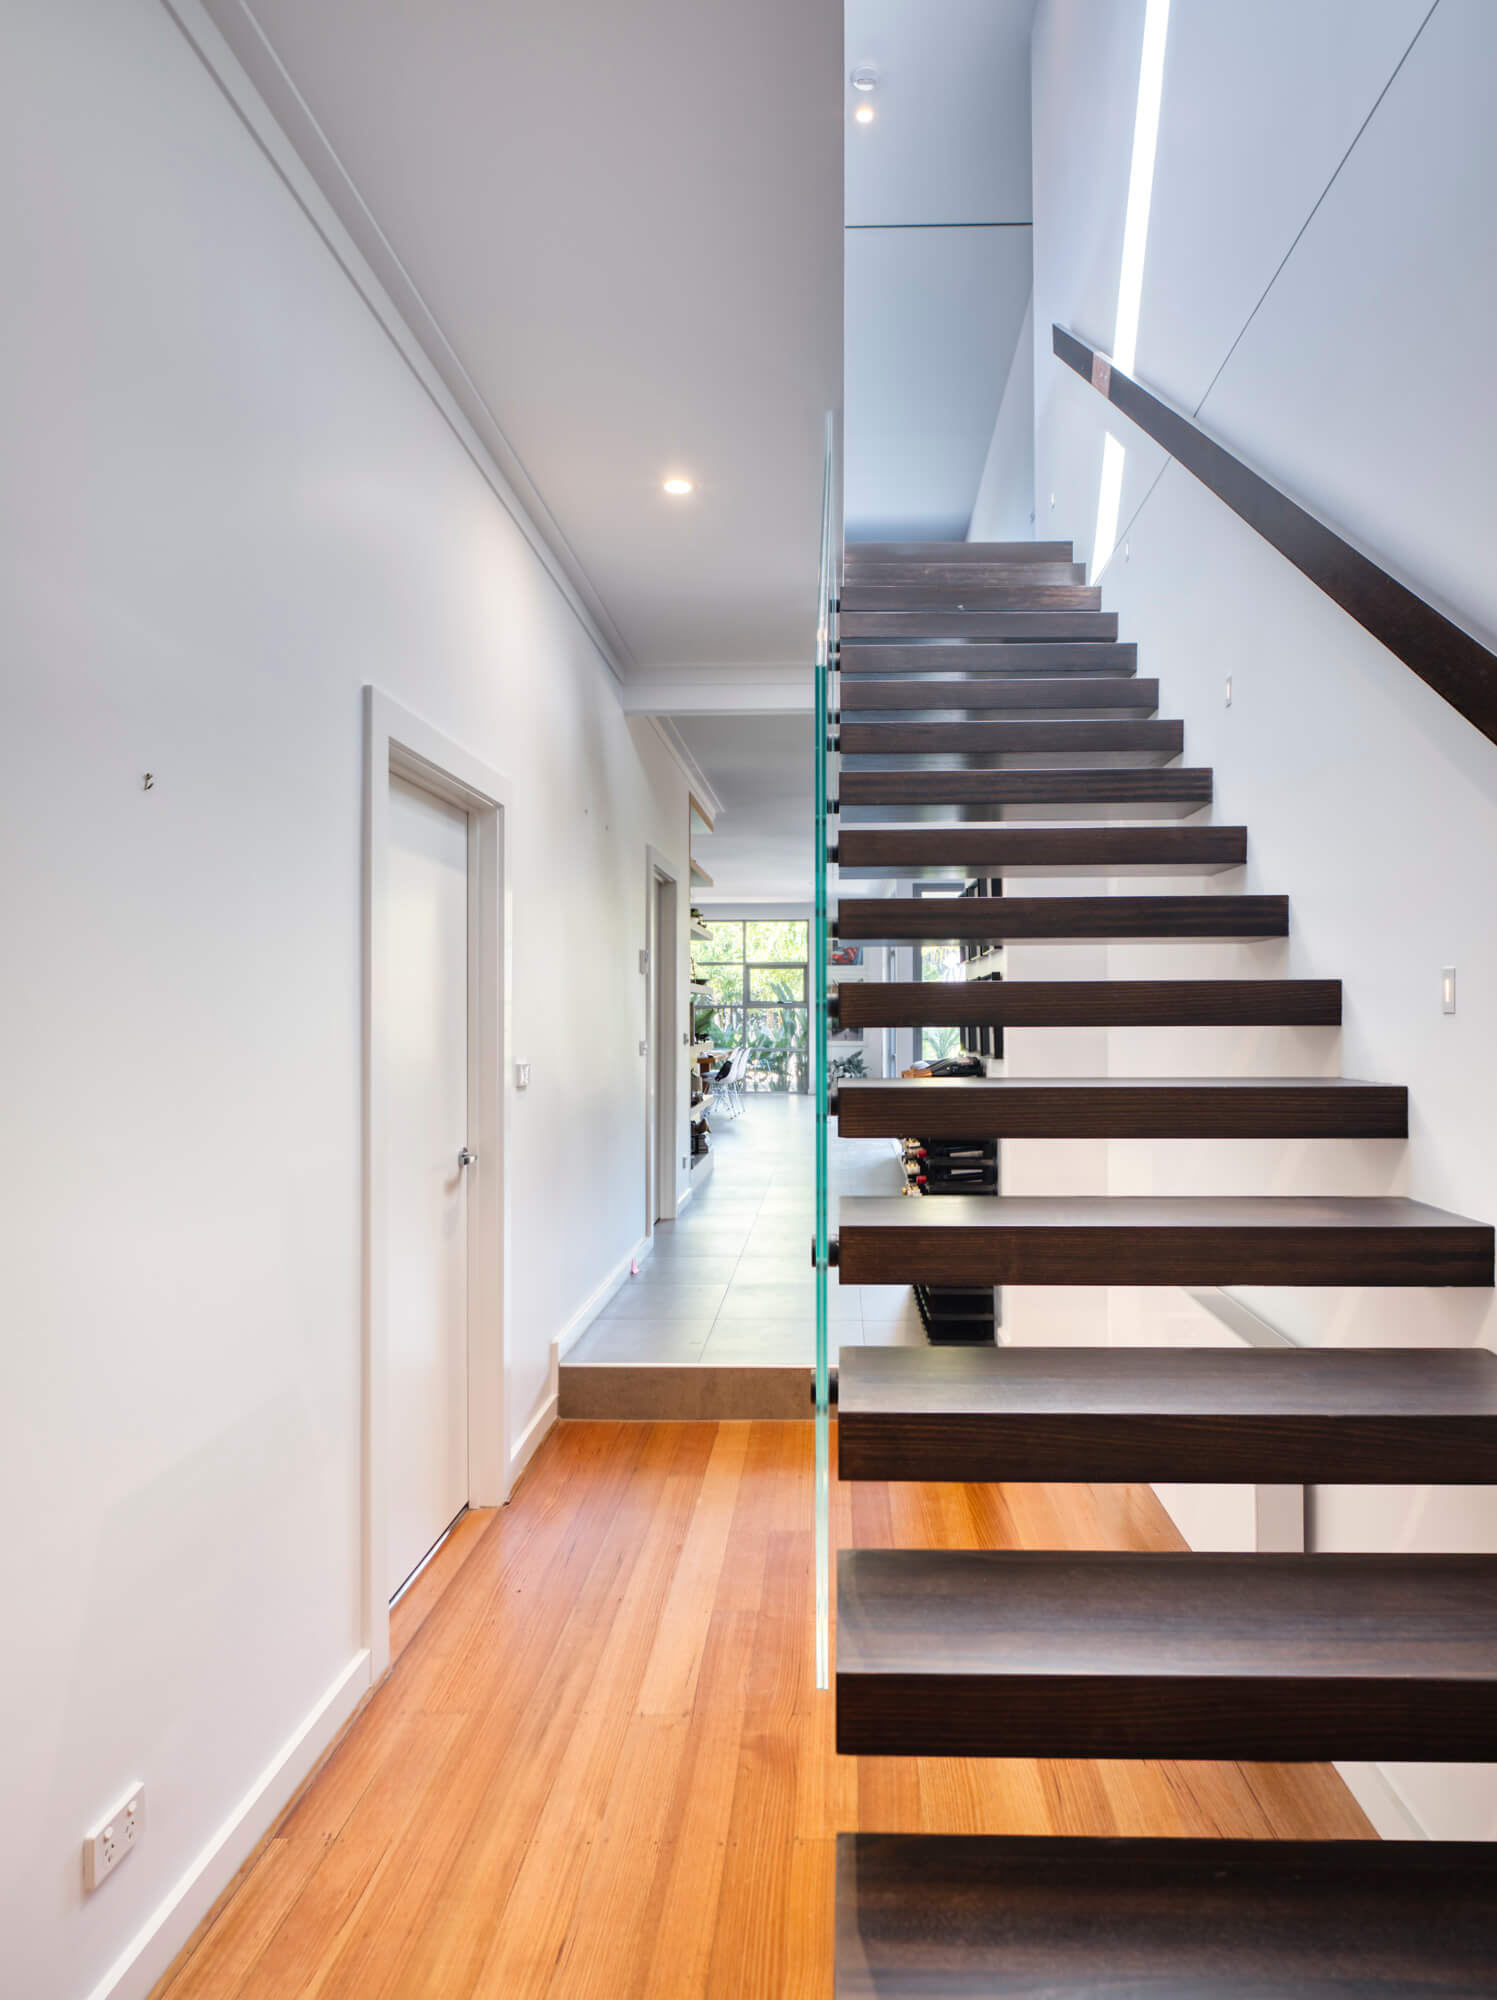 Staircase leading up to converted attic extension.jpg